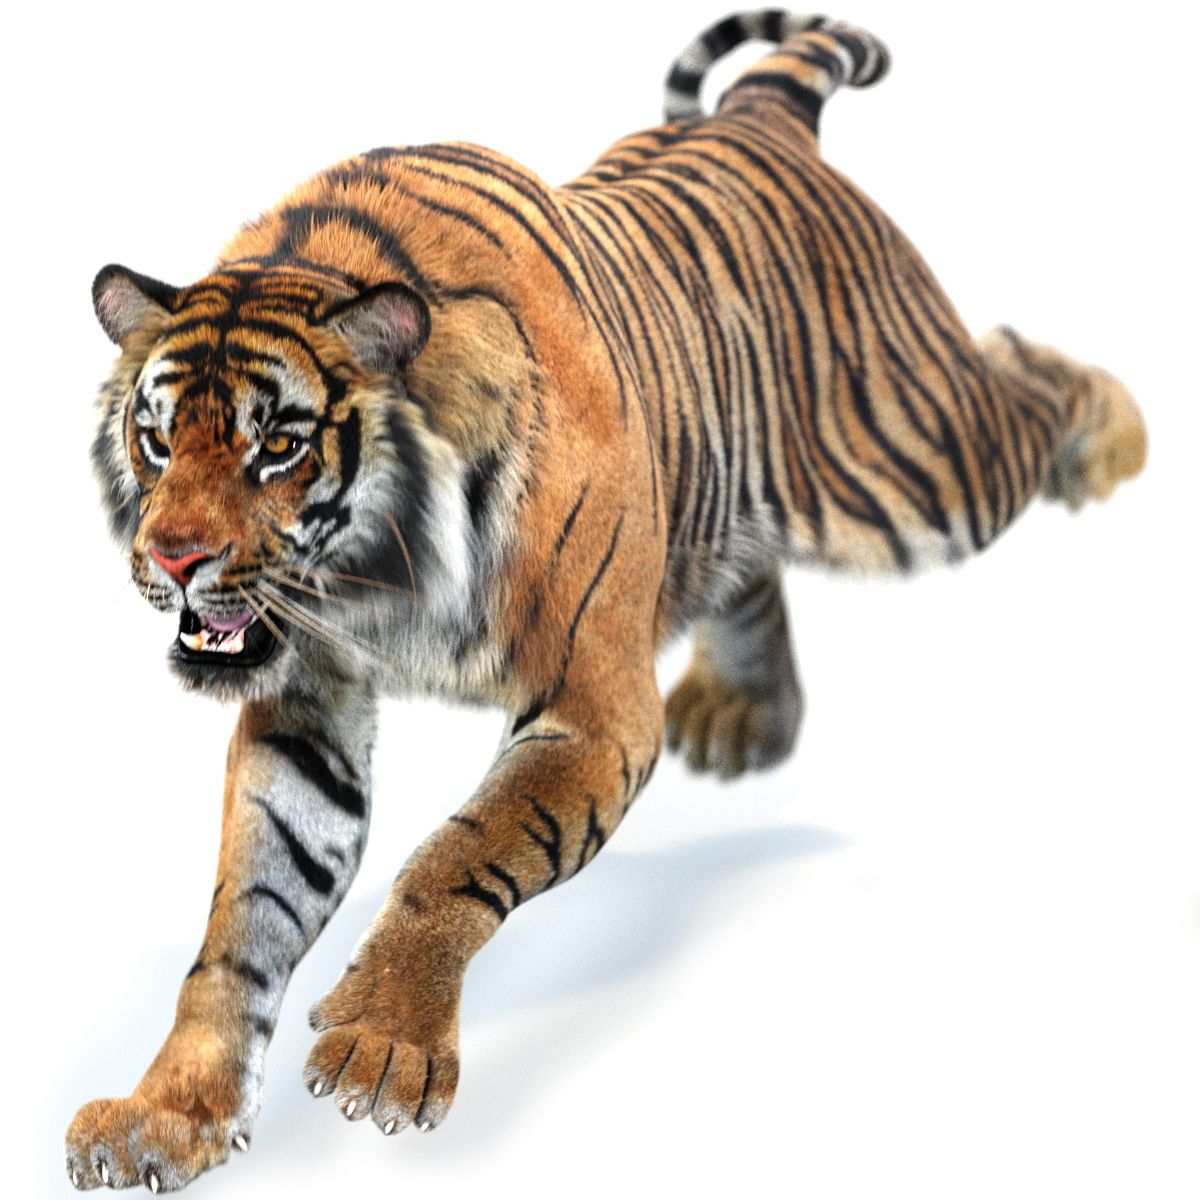 Sumatran Tiger Animated Fur Is A High Quality 3d Model To Add More Details And Realism To Your Rendering Project Tiger Fur Sumatran Tiger Black Panther Cat